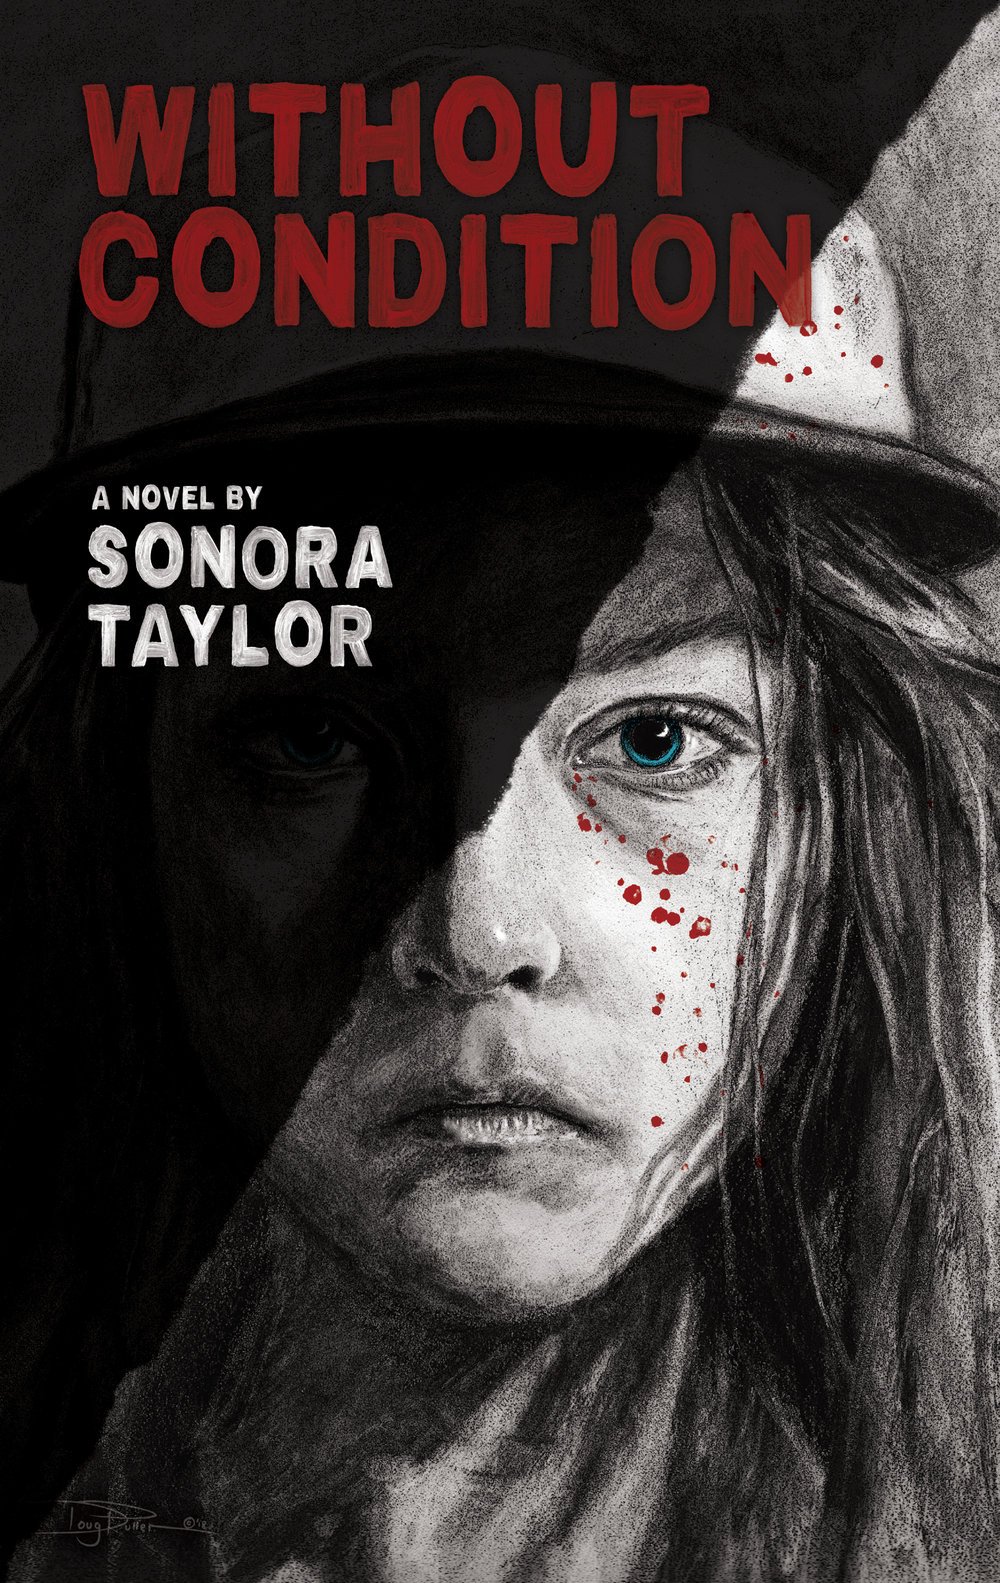 Without Condition_Sonora Taylor.jpg